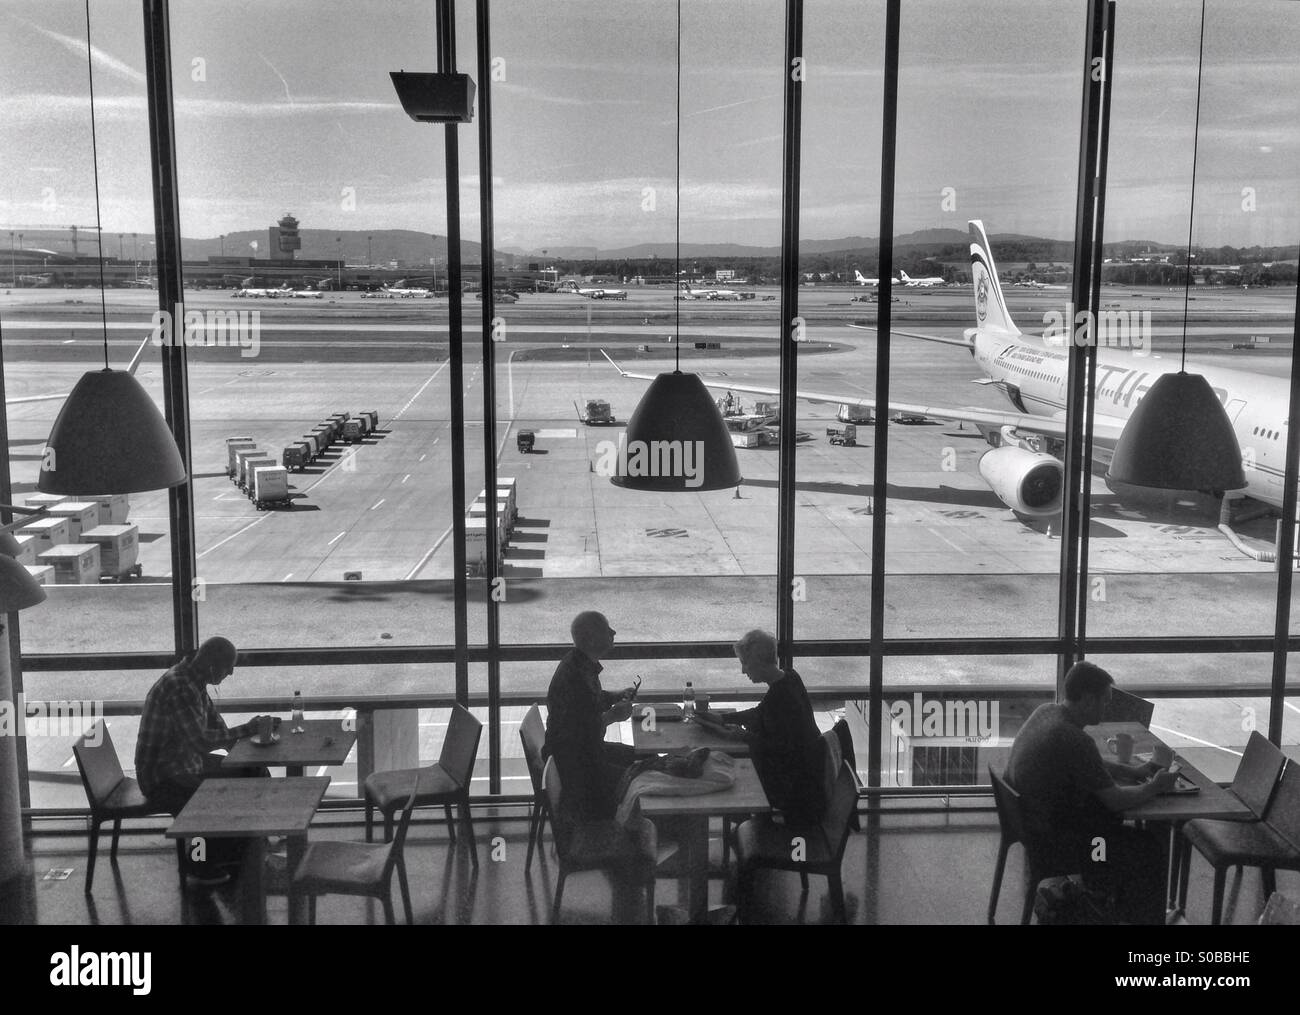 Travelers at Zurich airport - Stock Image